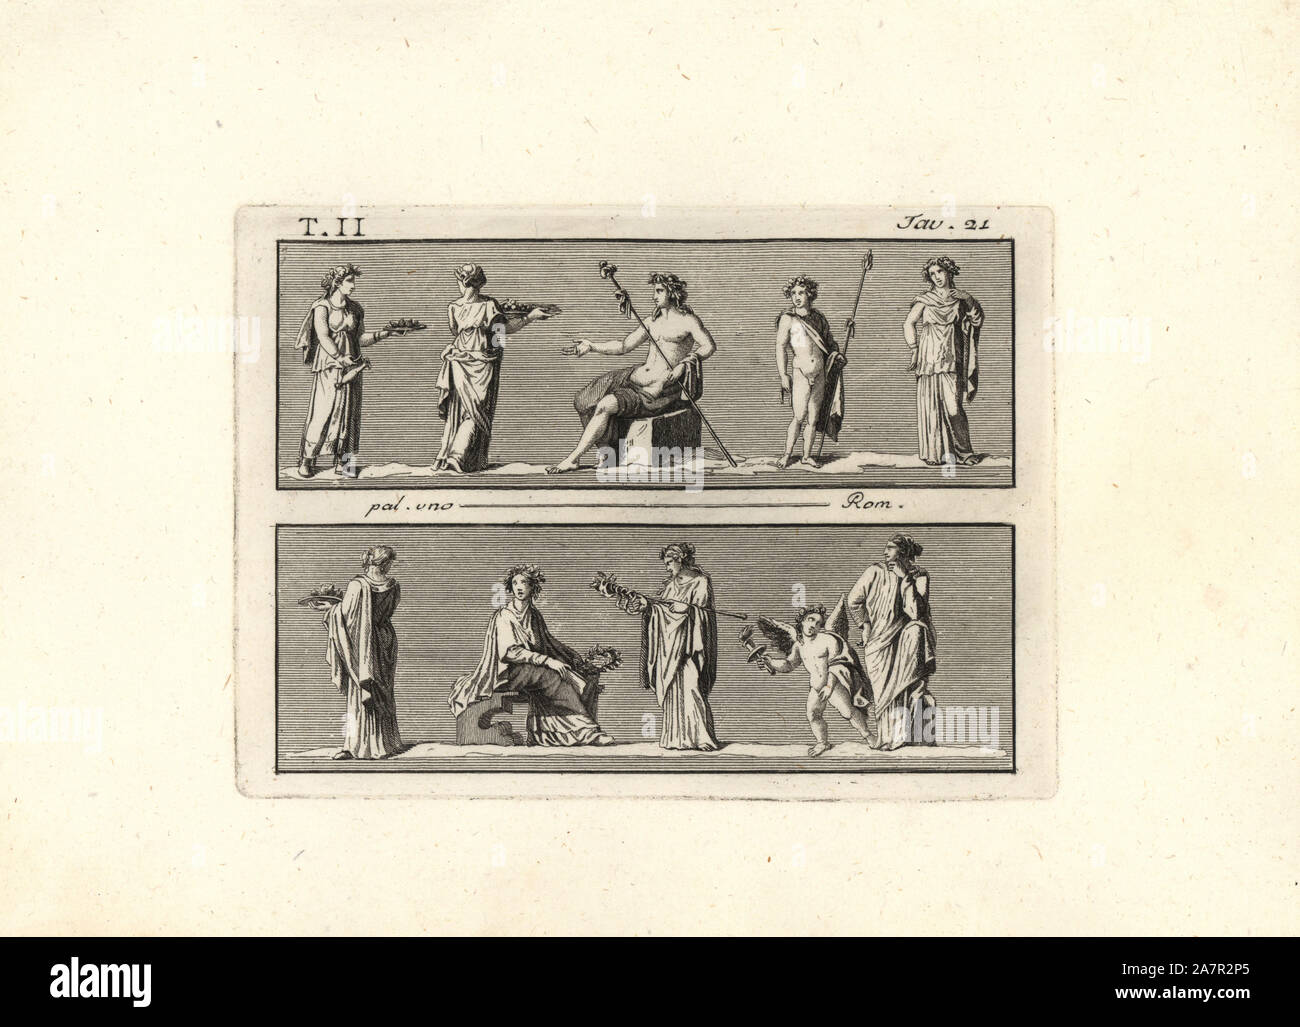 Bacchic rite. Women offering figs on platters to Bacchus, and seated woman in an initiation rite accompanied by a genius of Ceres (boy with wings). Copperplate engraving by Tommaso Piroli from his Antiquities of Herculaneum (Antichita di Ercolano), Rome, 1789. Stock Photo